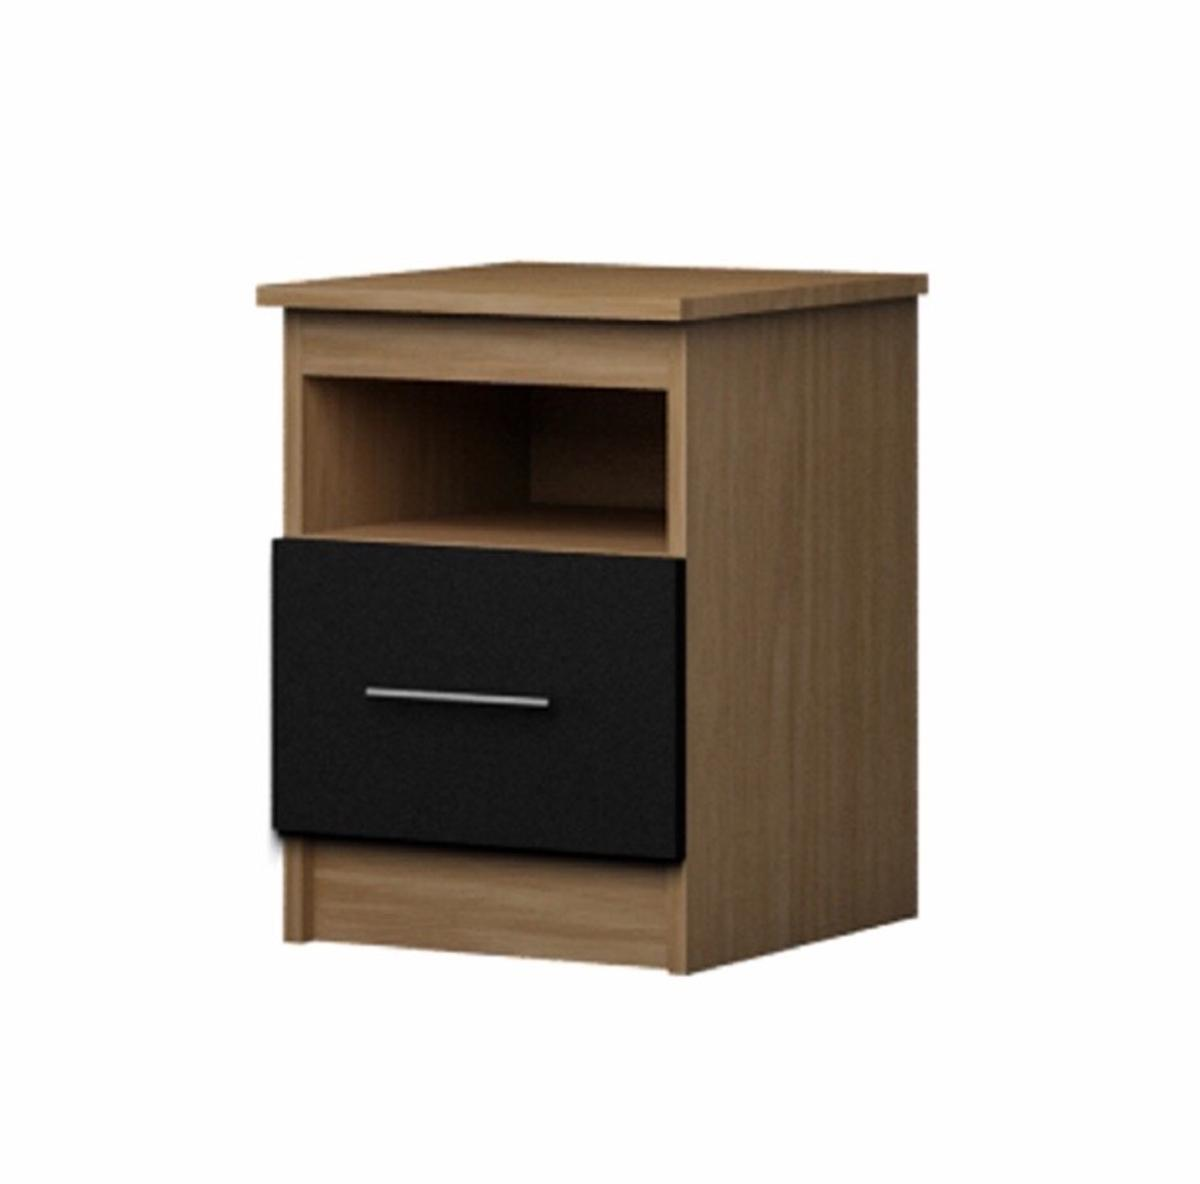 Quality bedside table with draw easy assembly in E1 5NB